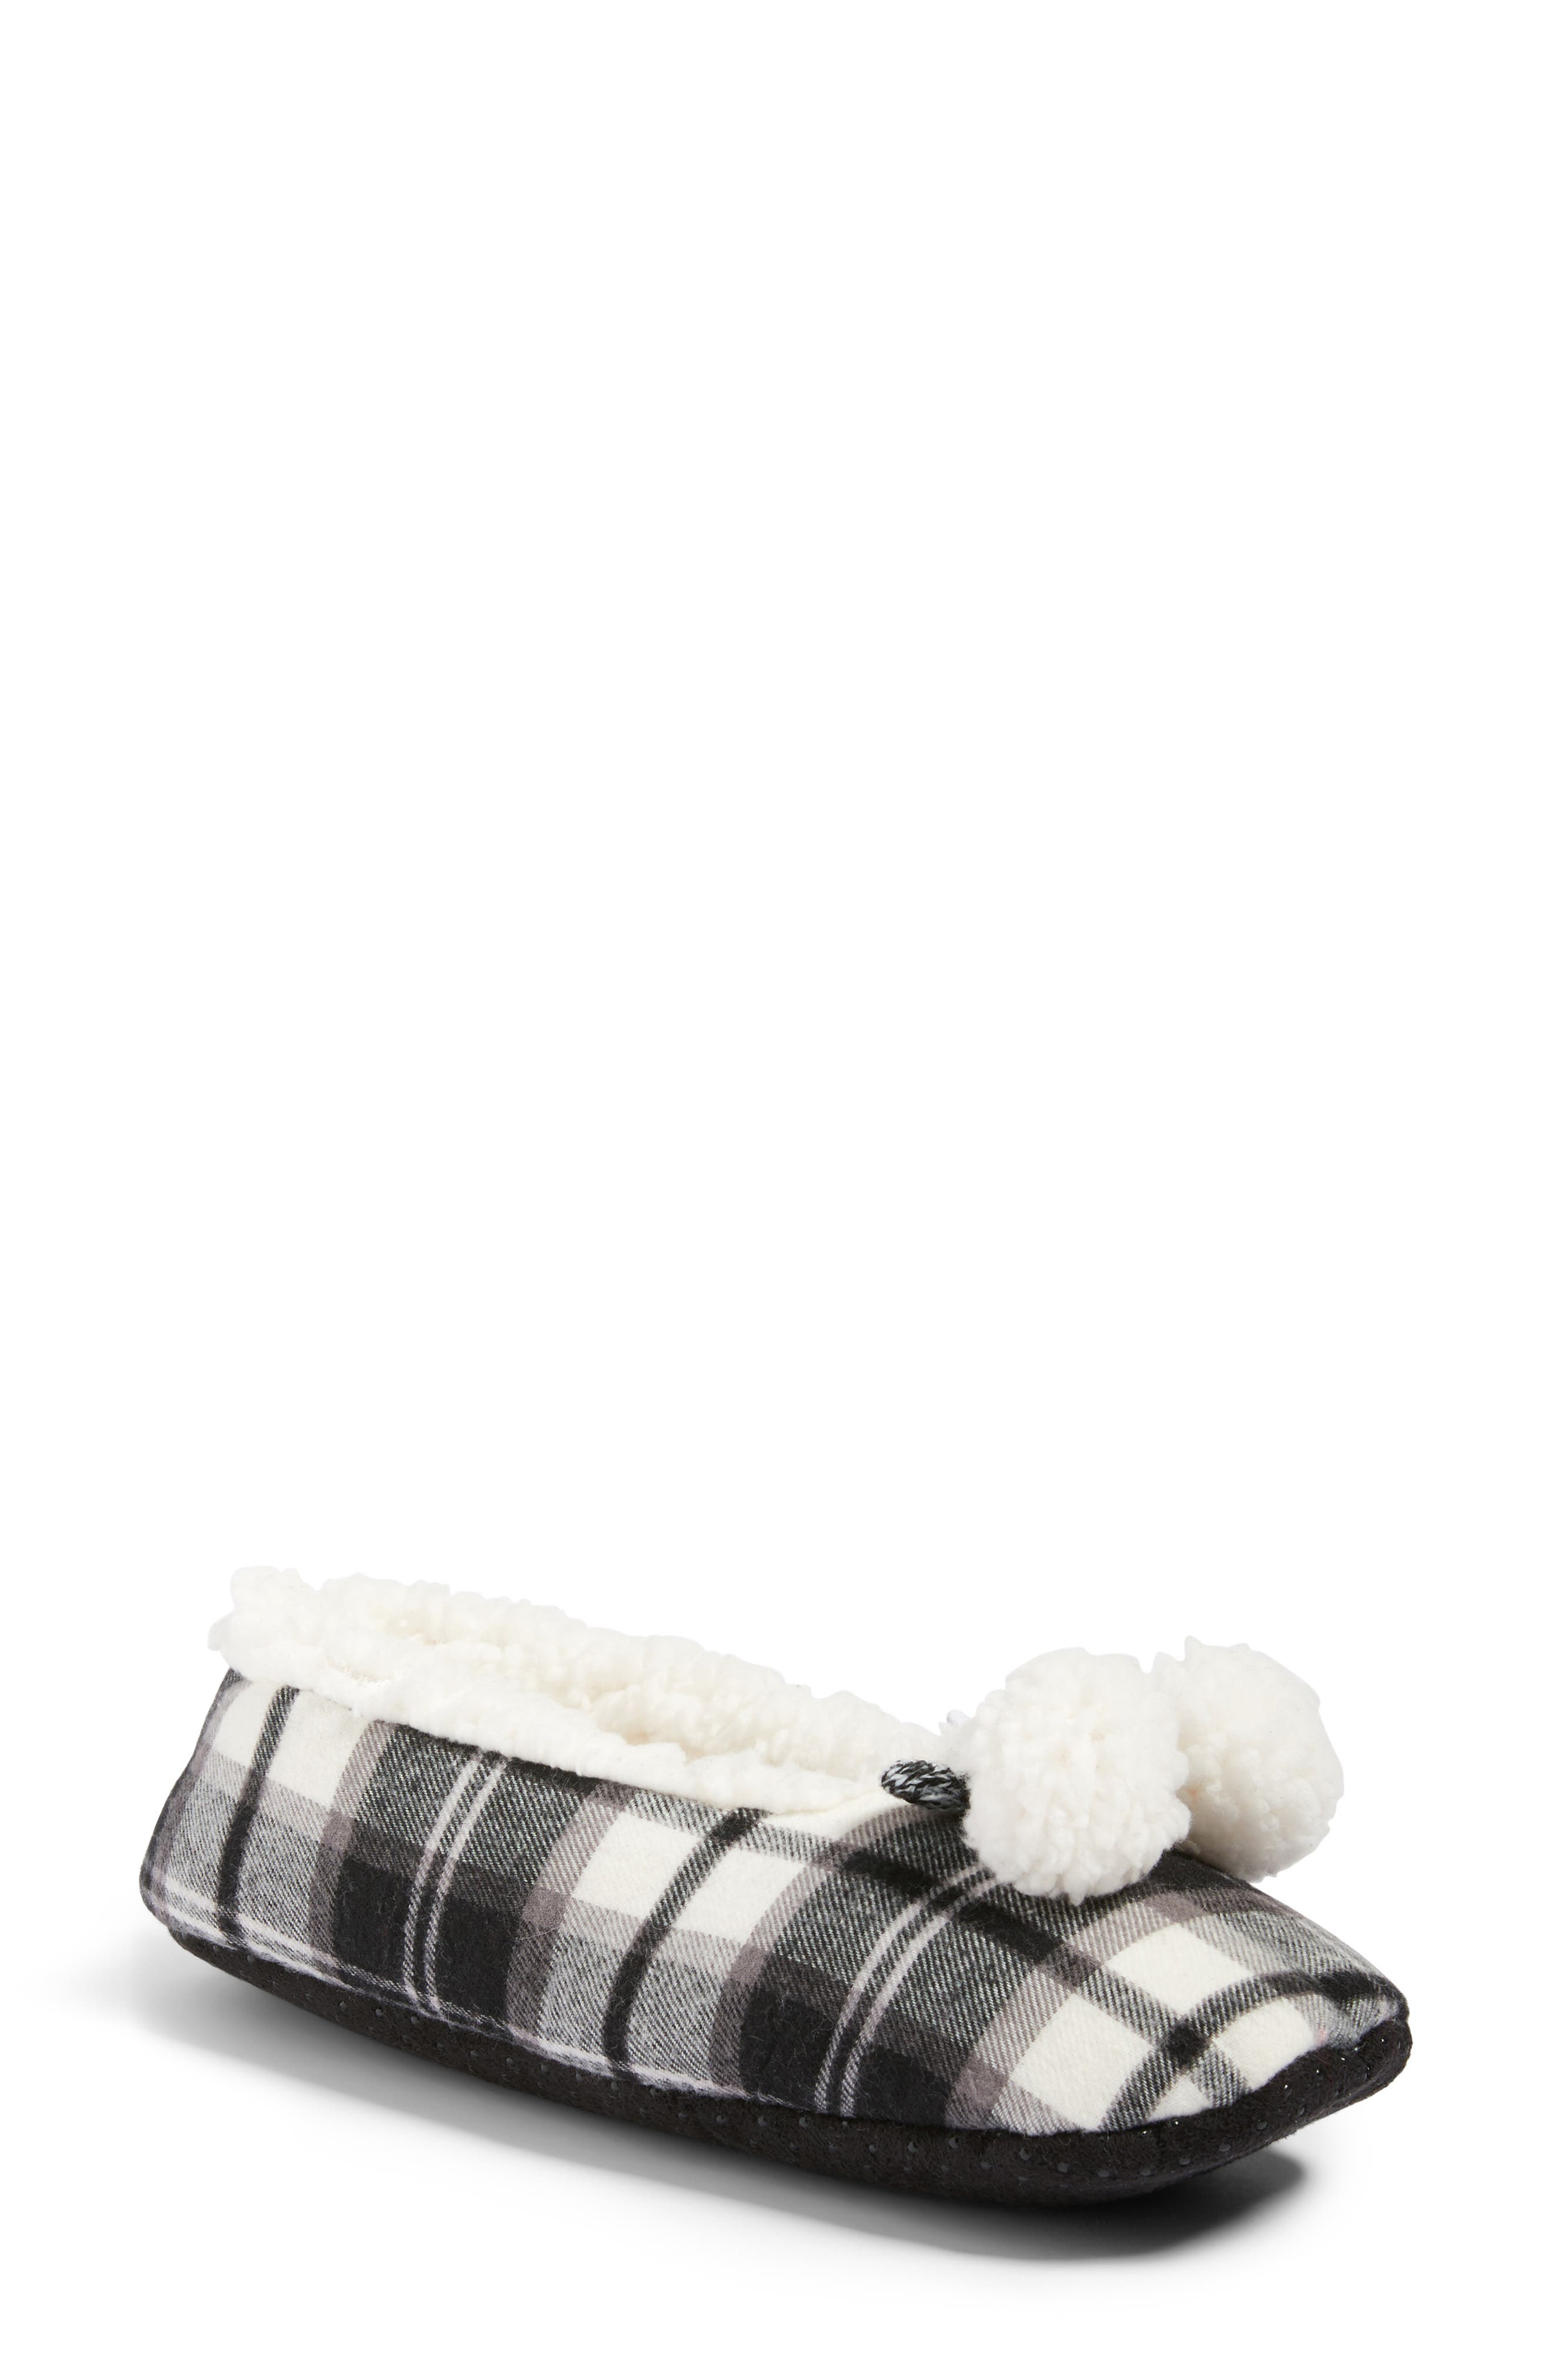 Plaid Slippers,                             Main thumbnail 1, color,                             002